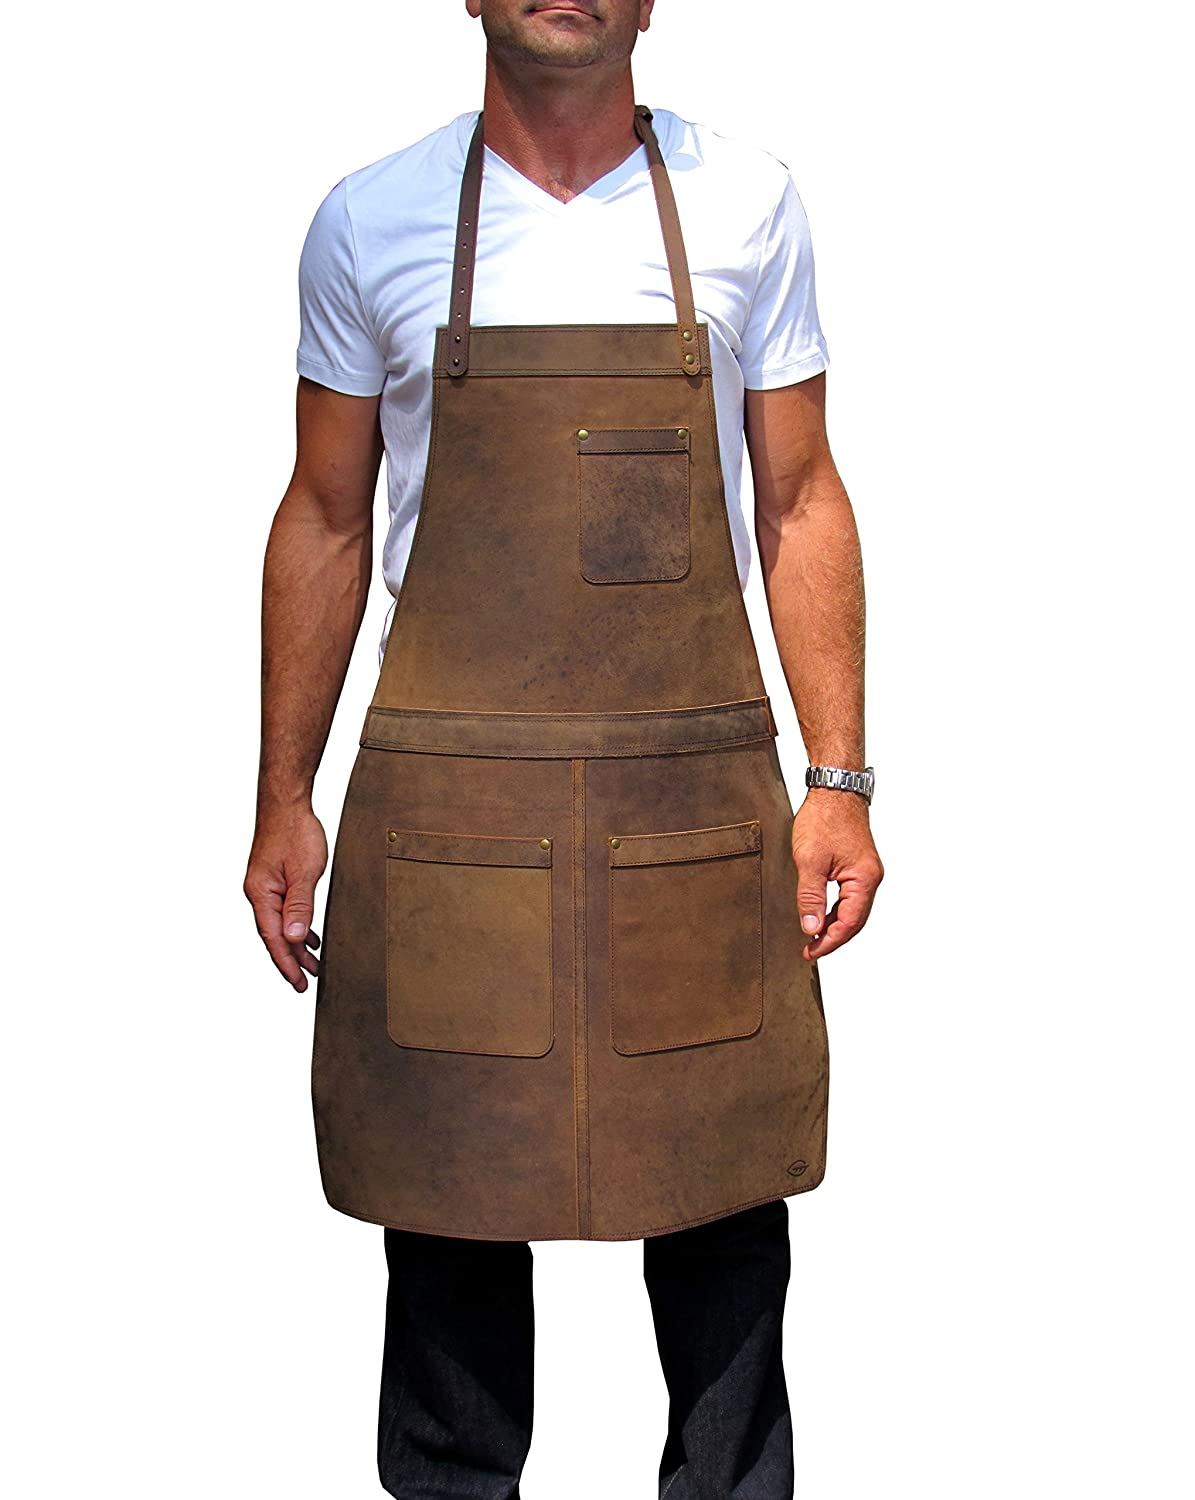 Ultimate Leather Apron for Professionals. from One Leaf (Brass Colour Hardware) AP2c